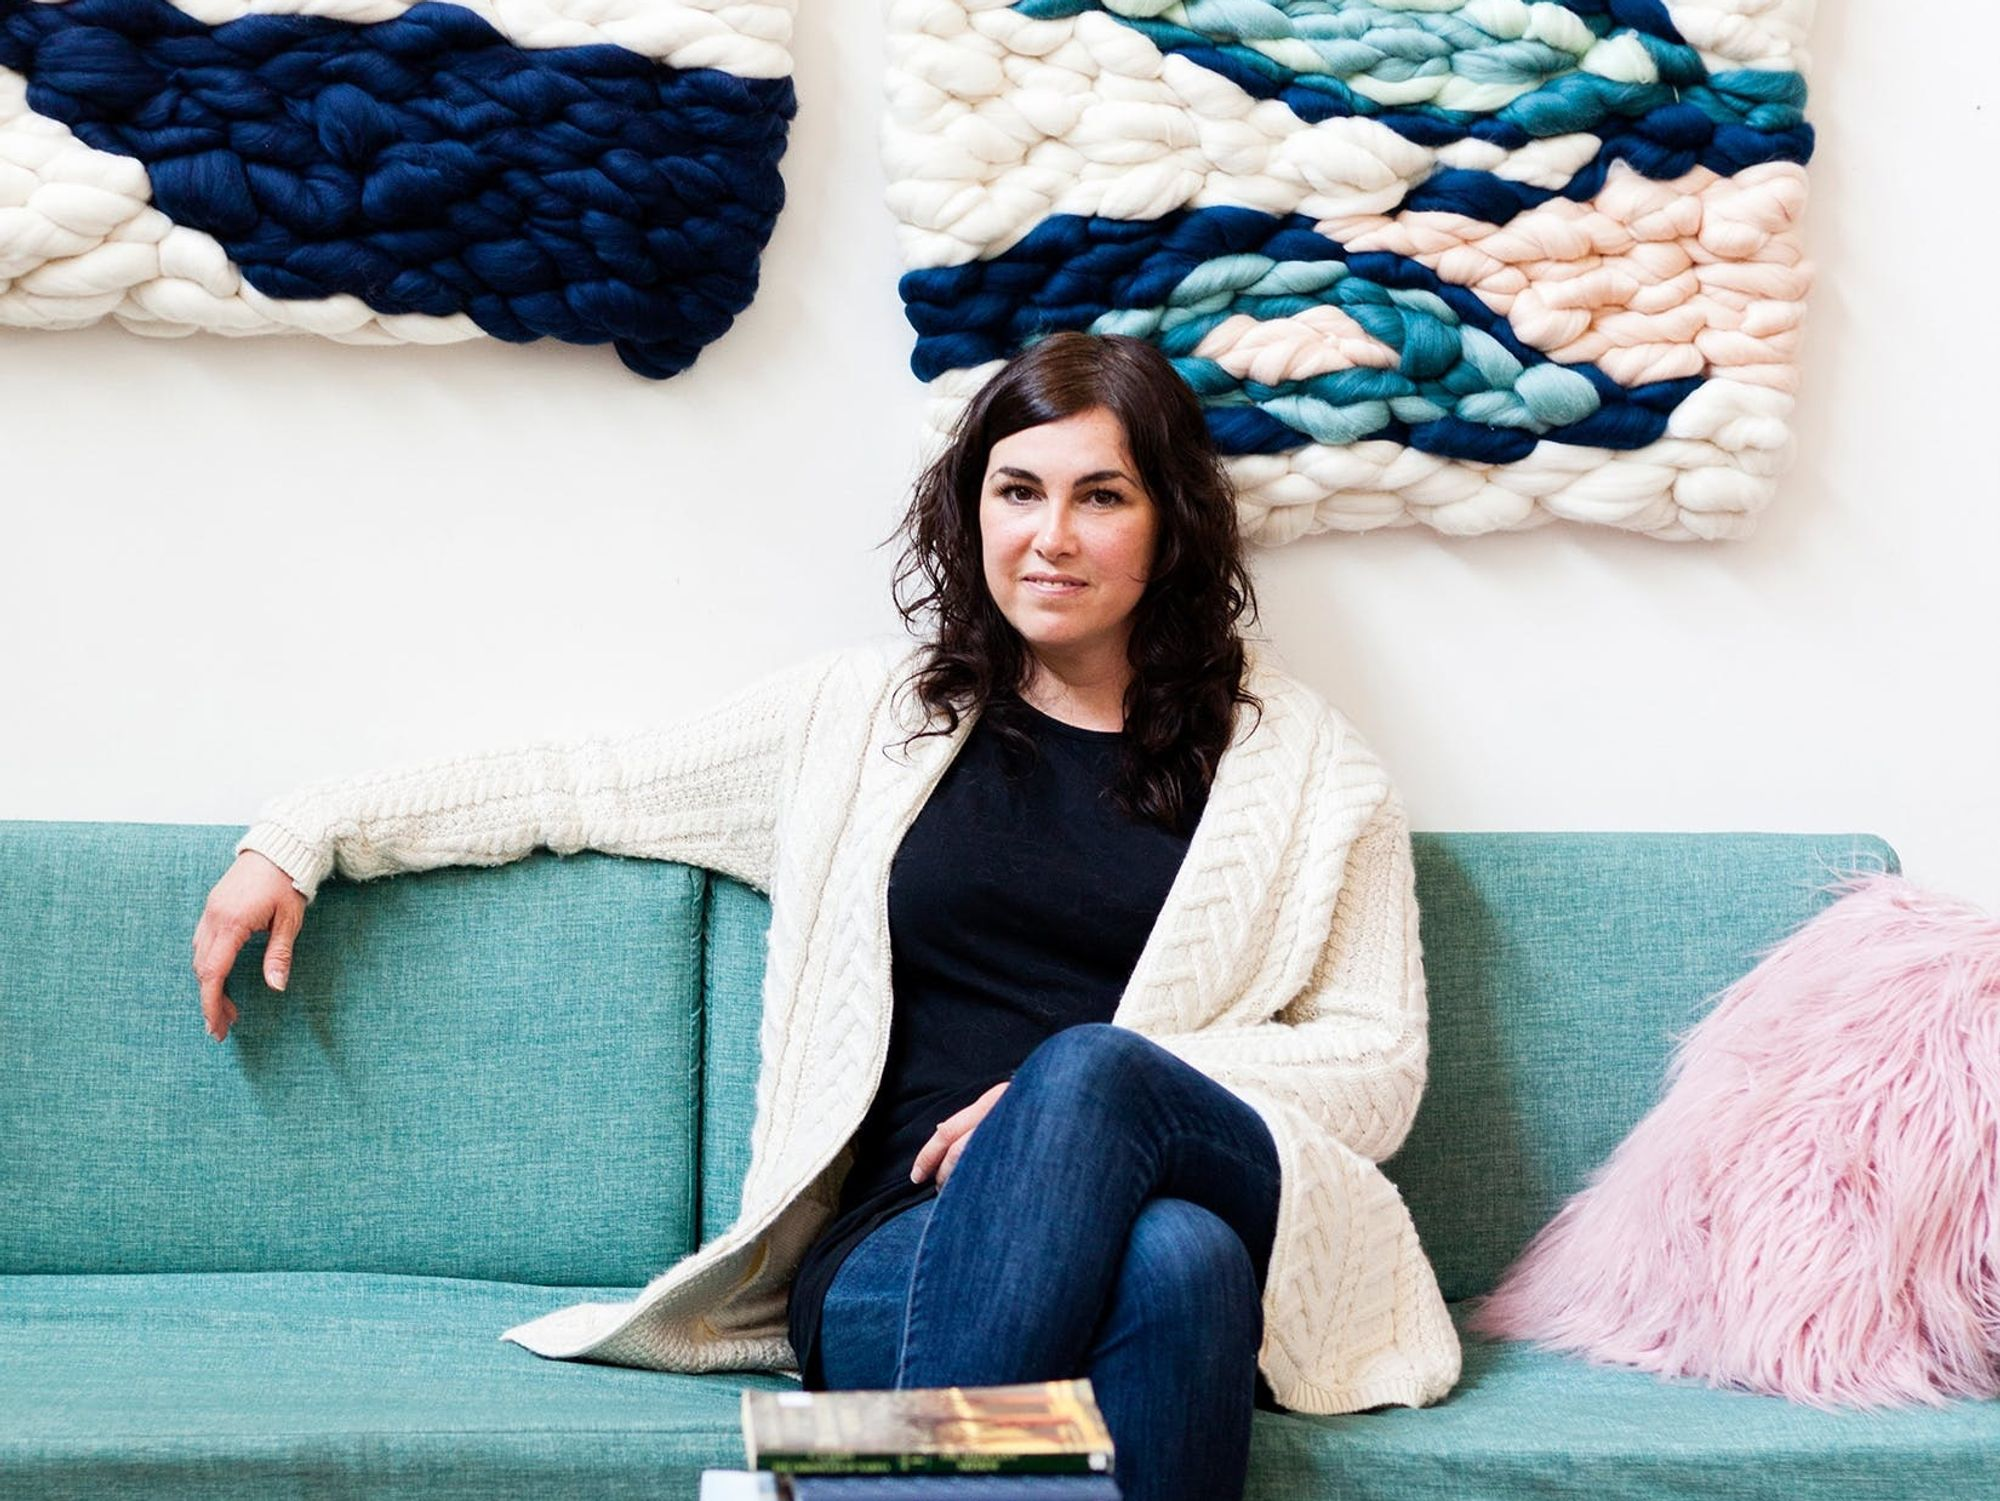 Creative Crushin': Artist Meghan Shimek's Larger-Than-Life Roving Creations Will Make You Want to Weave